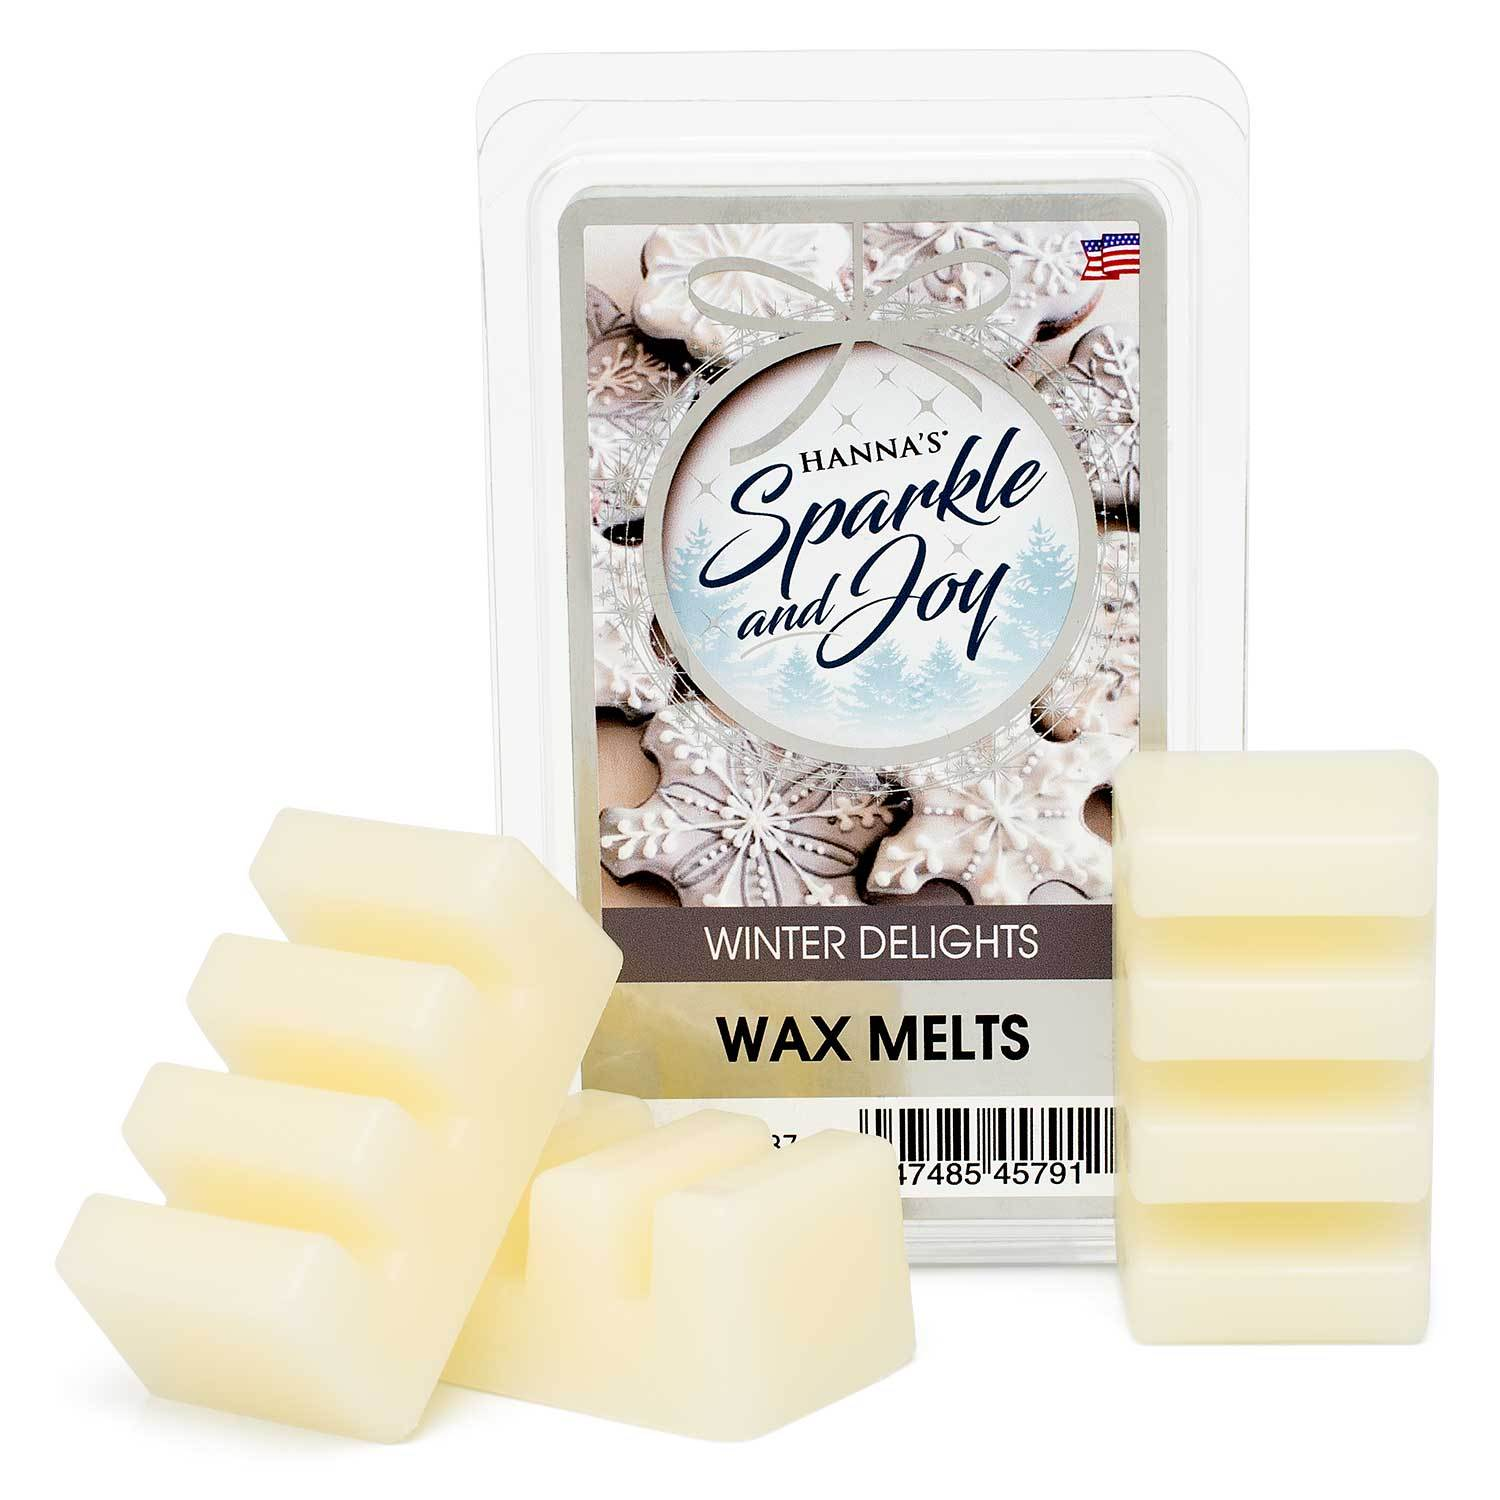 Winter Delights Scented Wax Melts Melts Candlemart.com $ 2.49